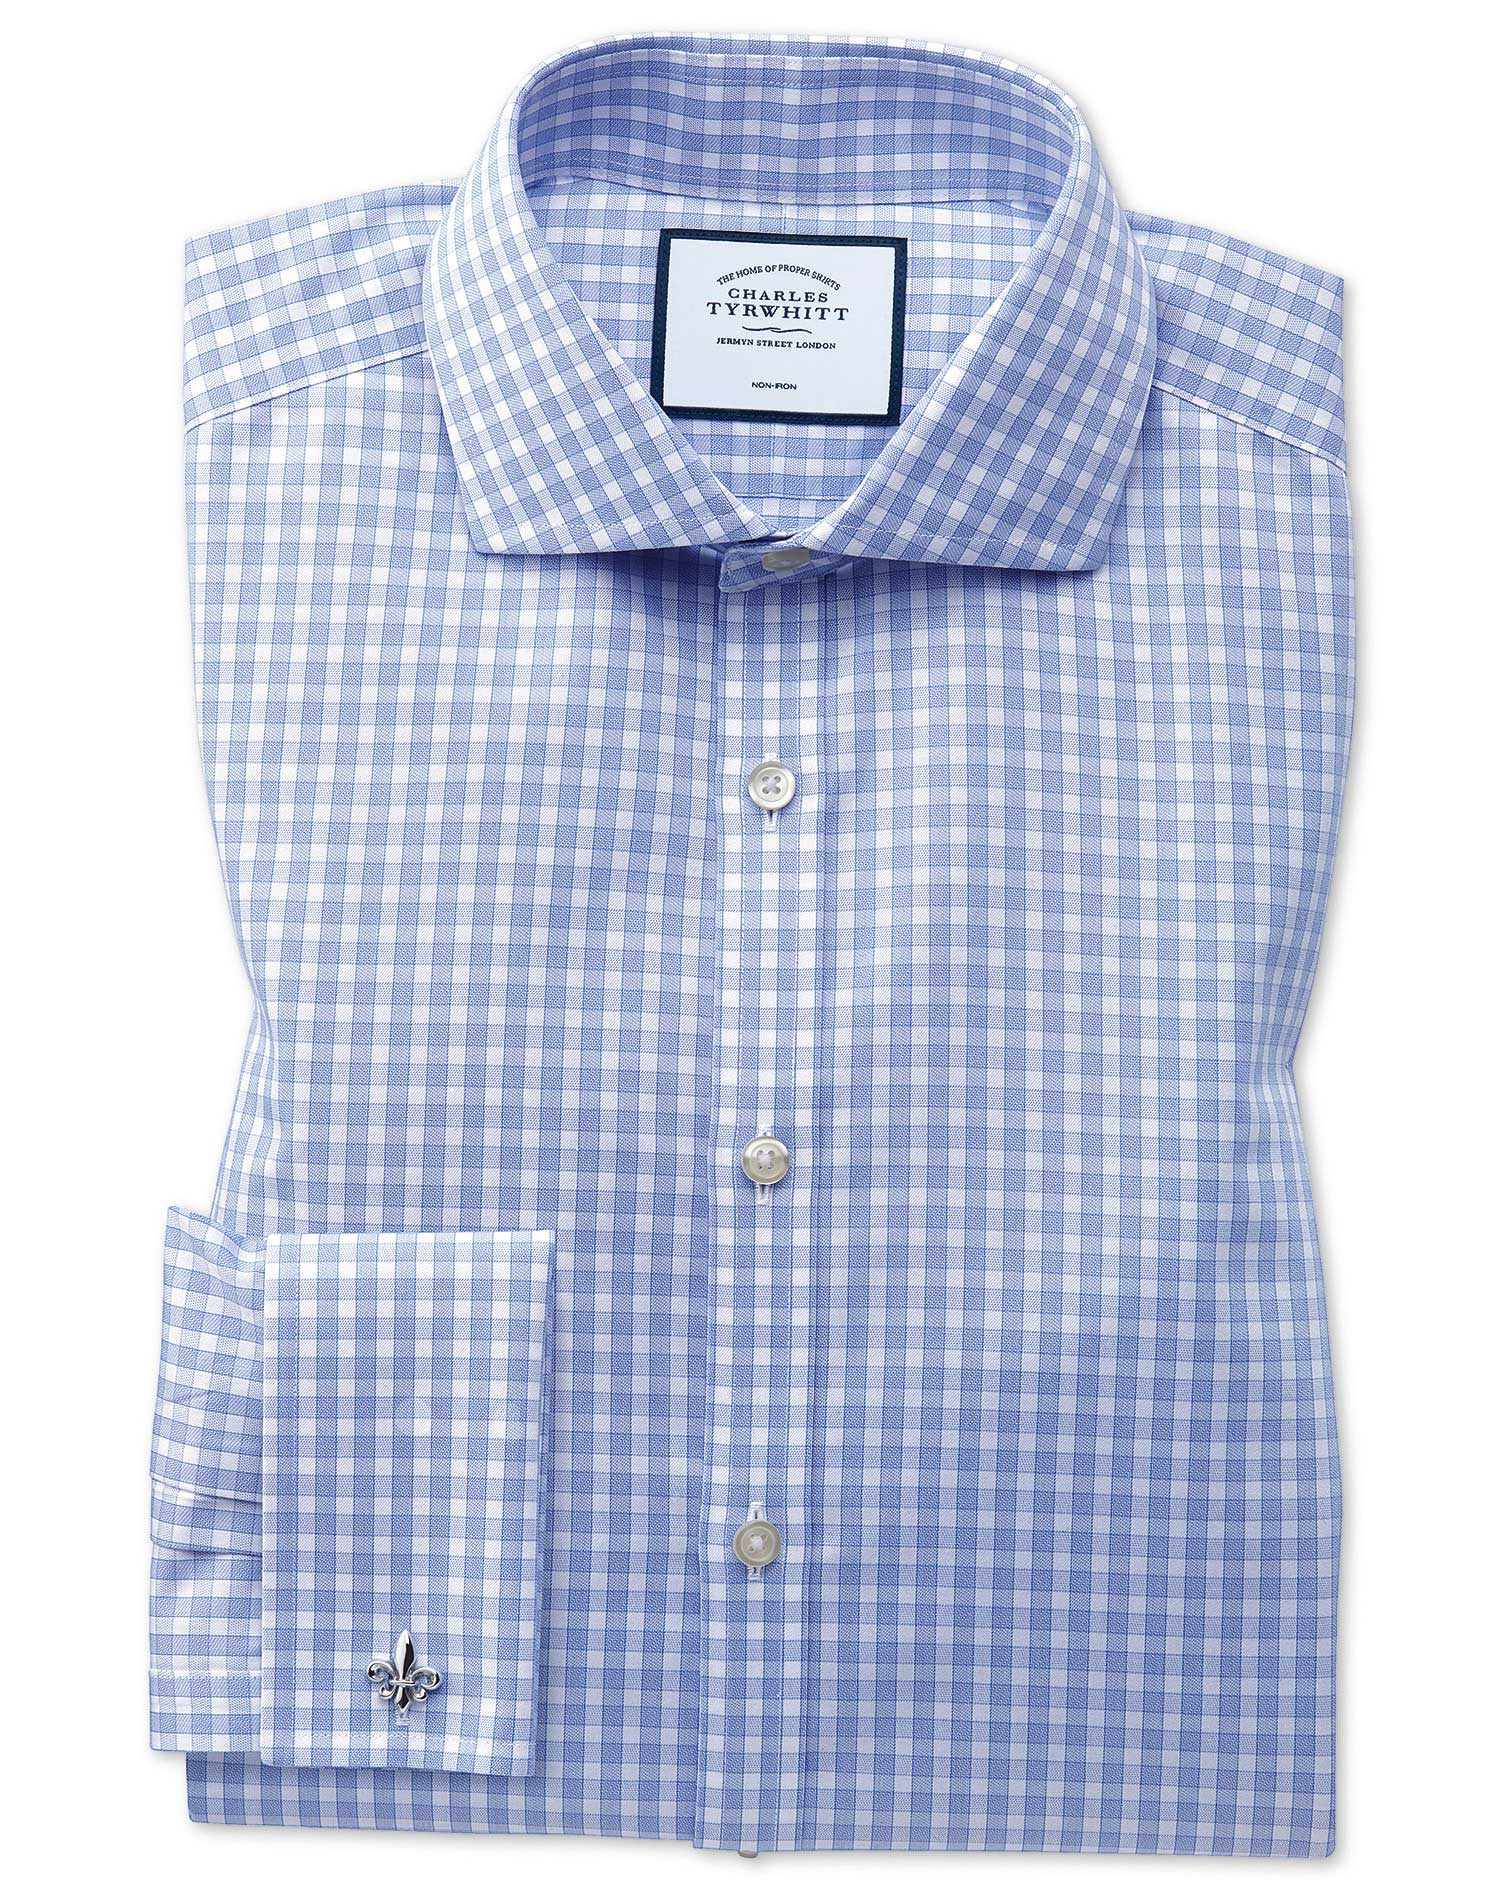 Slim Fit Non-Iron Twill Gingham Sky Blue Cotton Formal Shirt Double Cuff Size 17.5/36 by Charles Tyr